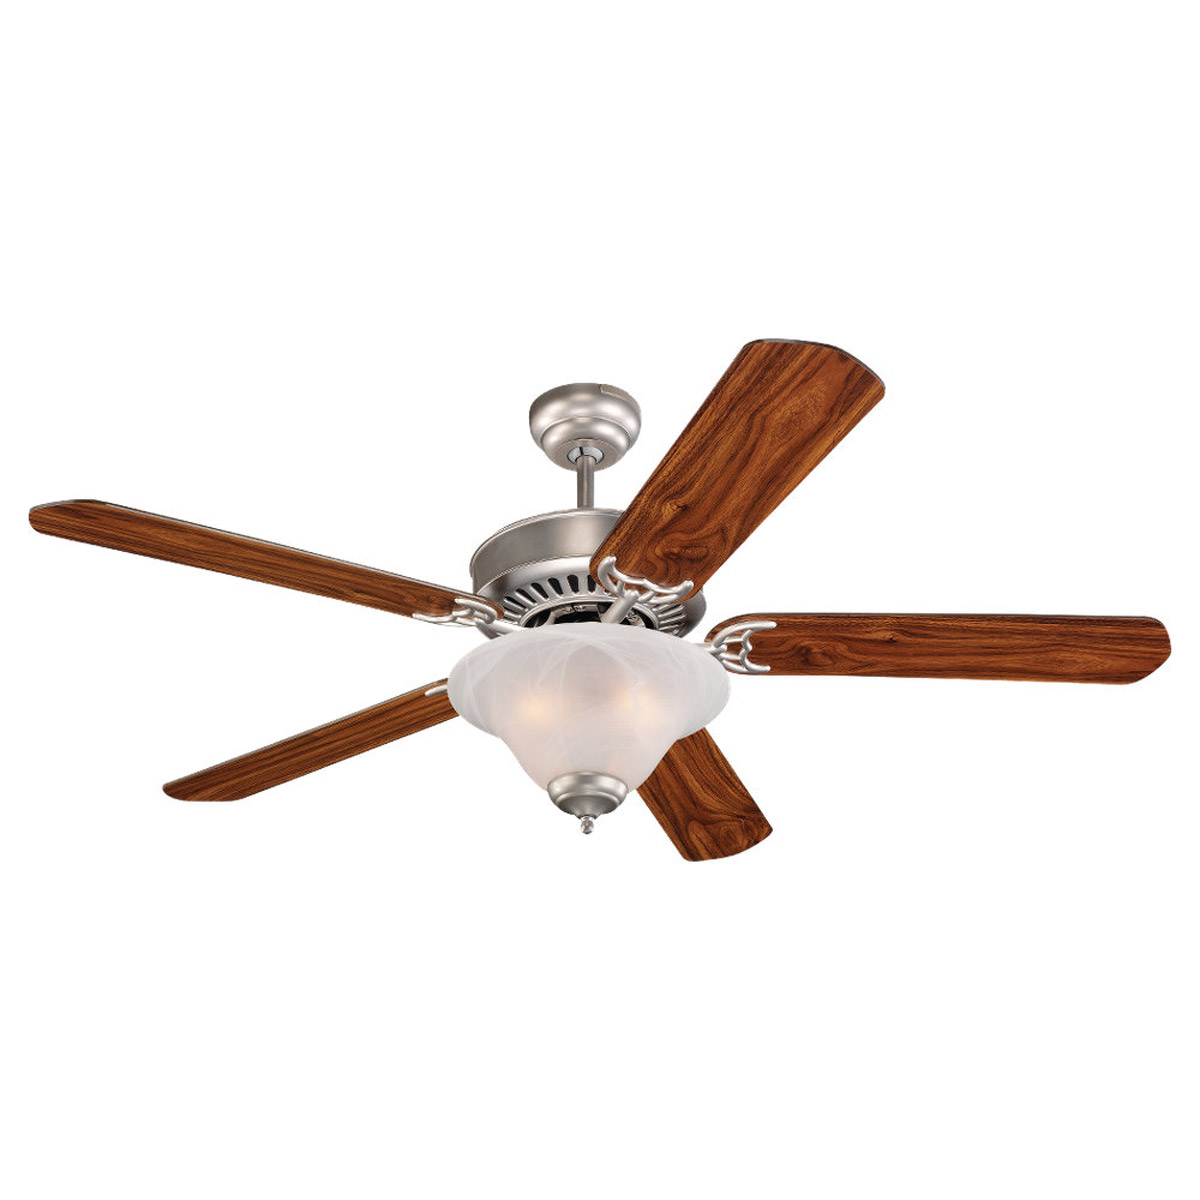 review giveaways fanimation of hubbardton fanimationhubbardtonforgehighqualityceilingfan win quality fans forge your ceiling giveaway fan high